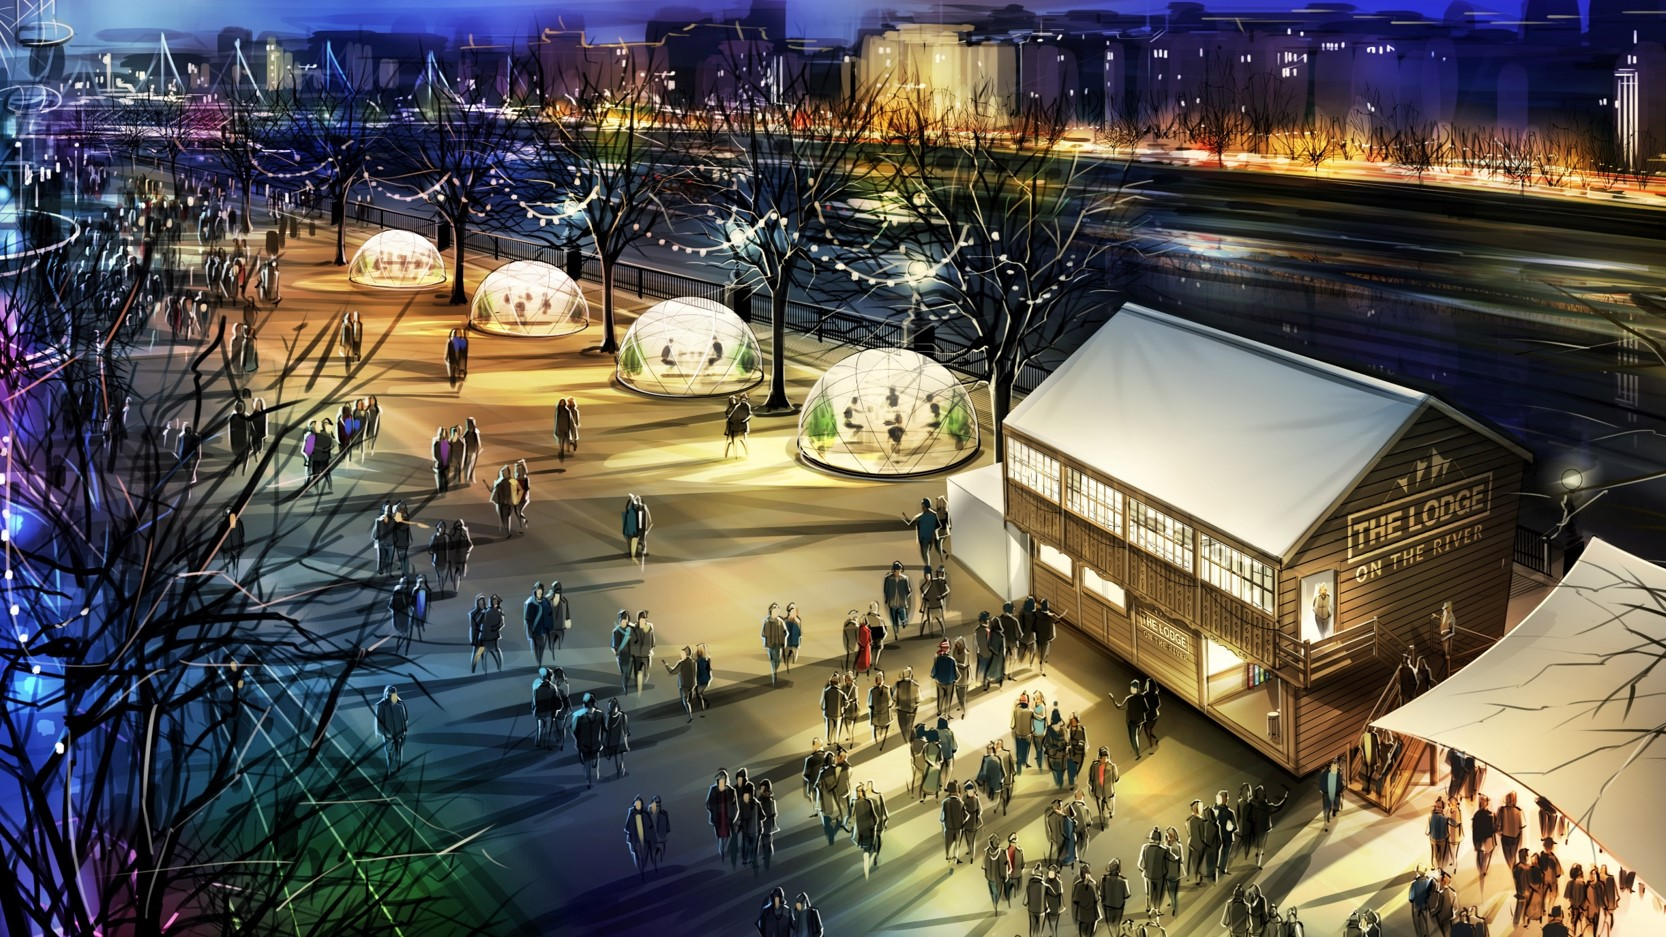 Impression of Jimmy's Lodge on the Southbank. There are 4 pods that are on the river, with fairy lights hanging above them. There is a wooden hut in the corner which people are gathering around